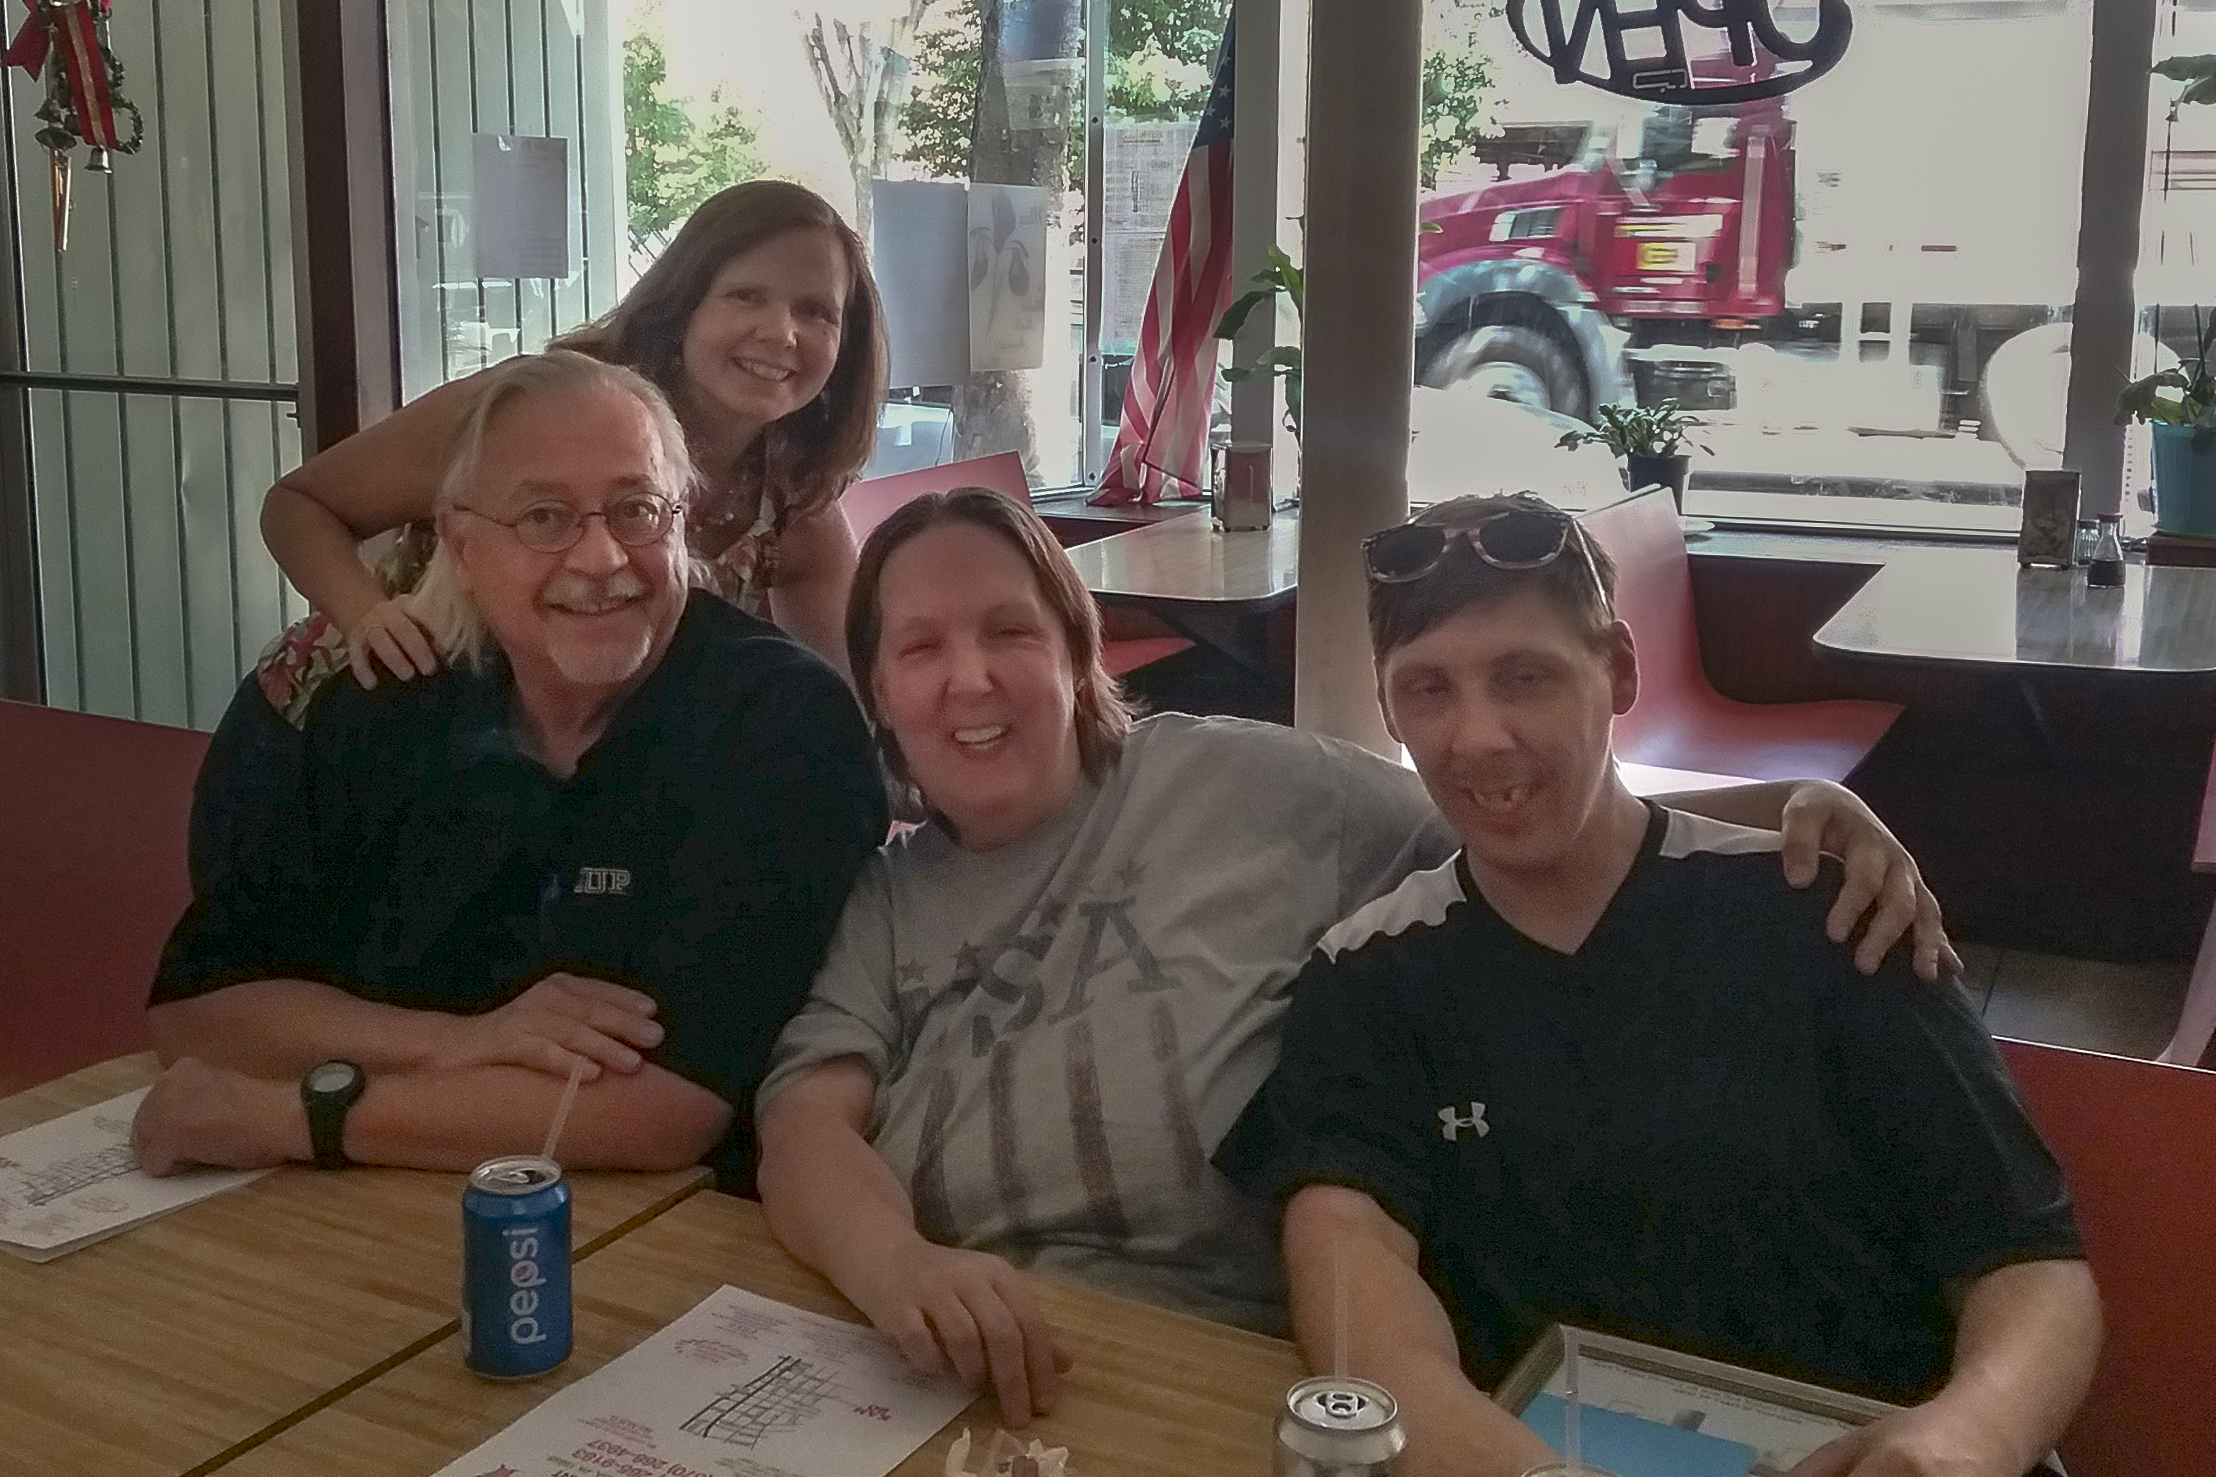 After a search that started in 2007, Jean Searle met her son, Robert Cummings, next to her on the right, for the first time on May 29, 2018, at a Chinese restaurant in Towanda, Pa. With Searle and Cummings are James W. Conroy (l) and Maura McInernery(standing), who helped with the search.